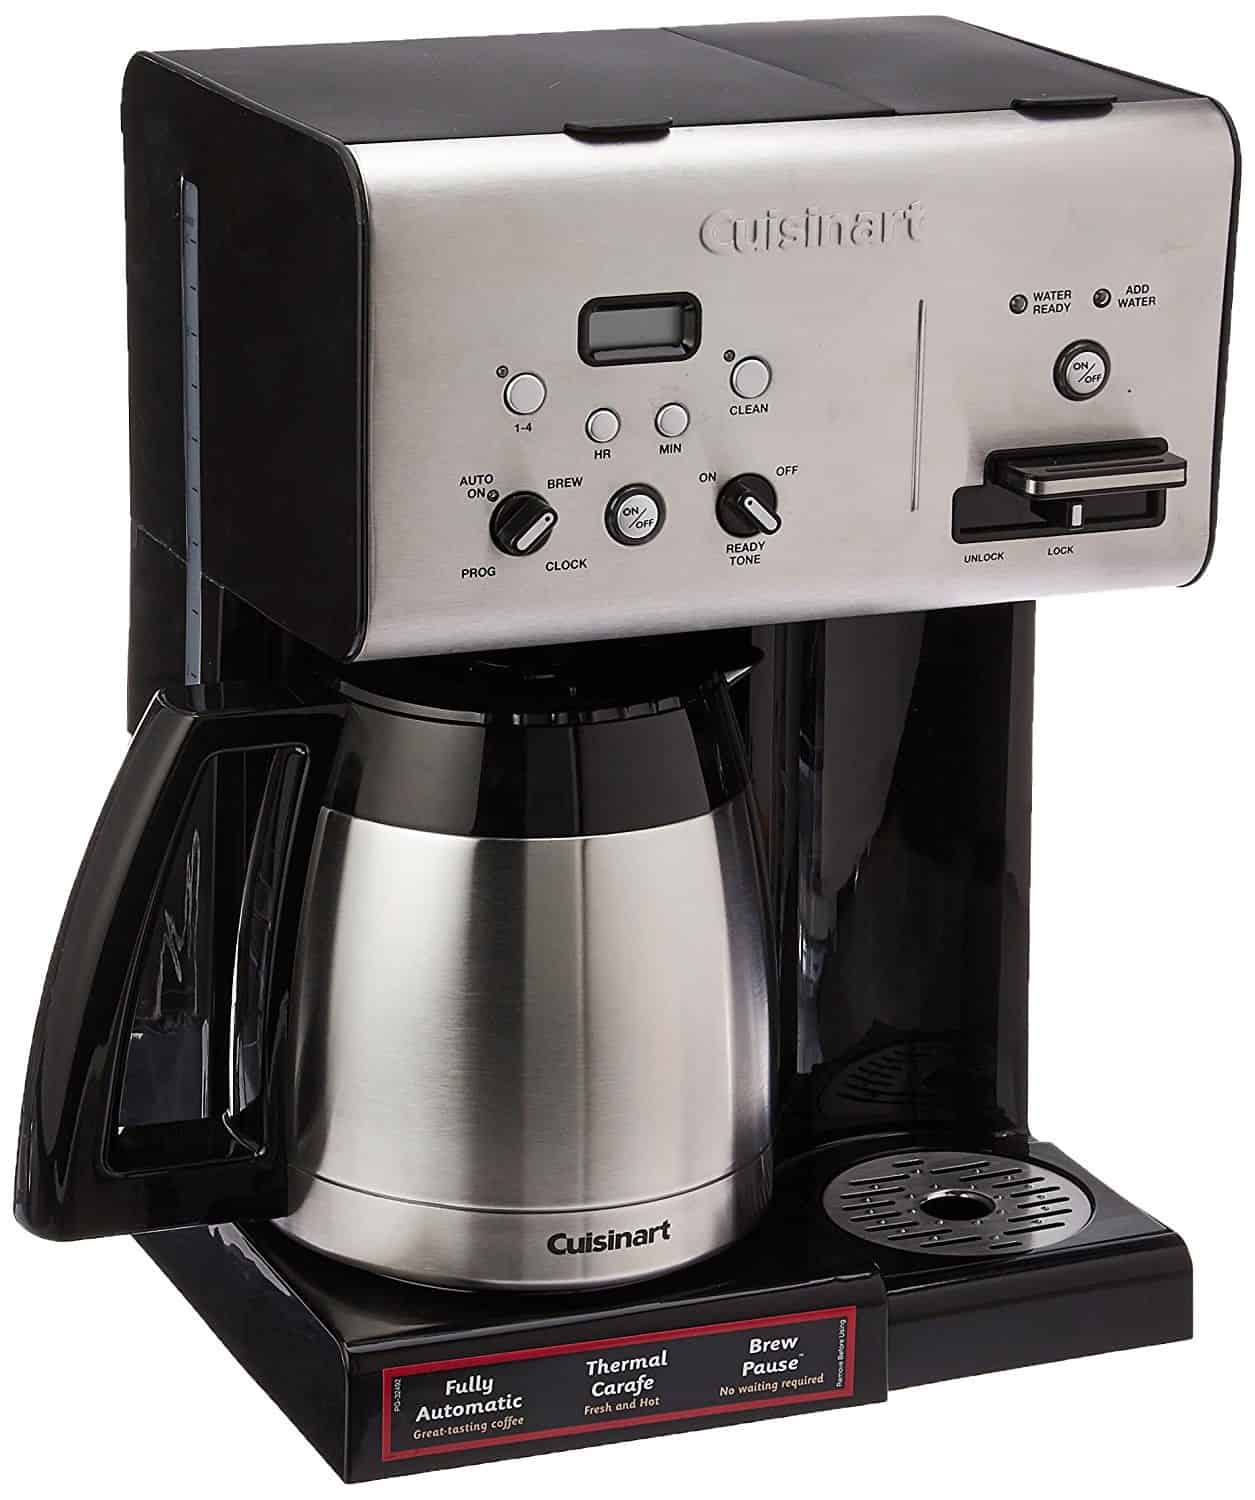 Top 15 Best Small Espresso Machine Options for 2018